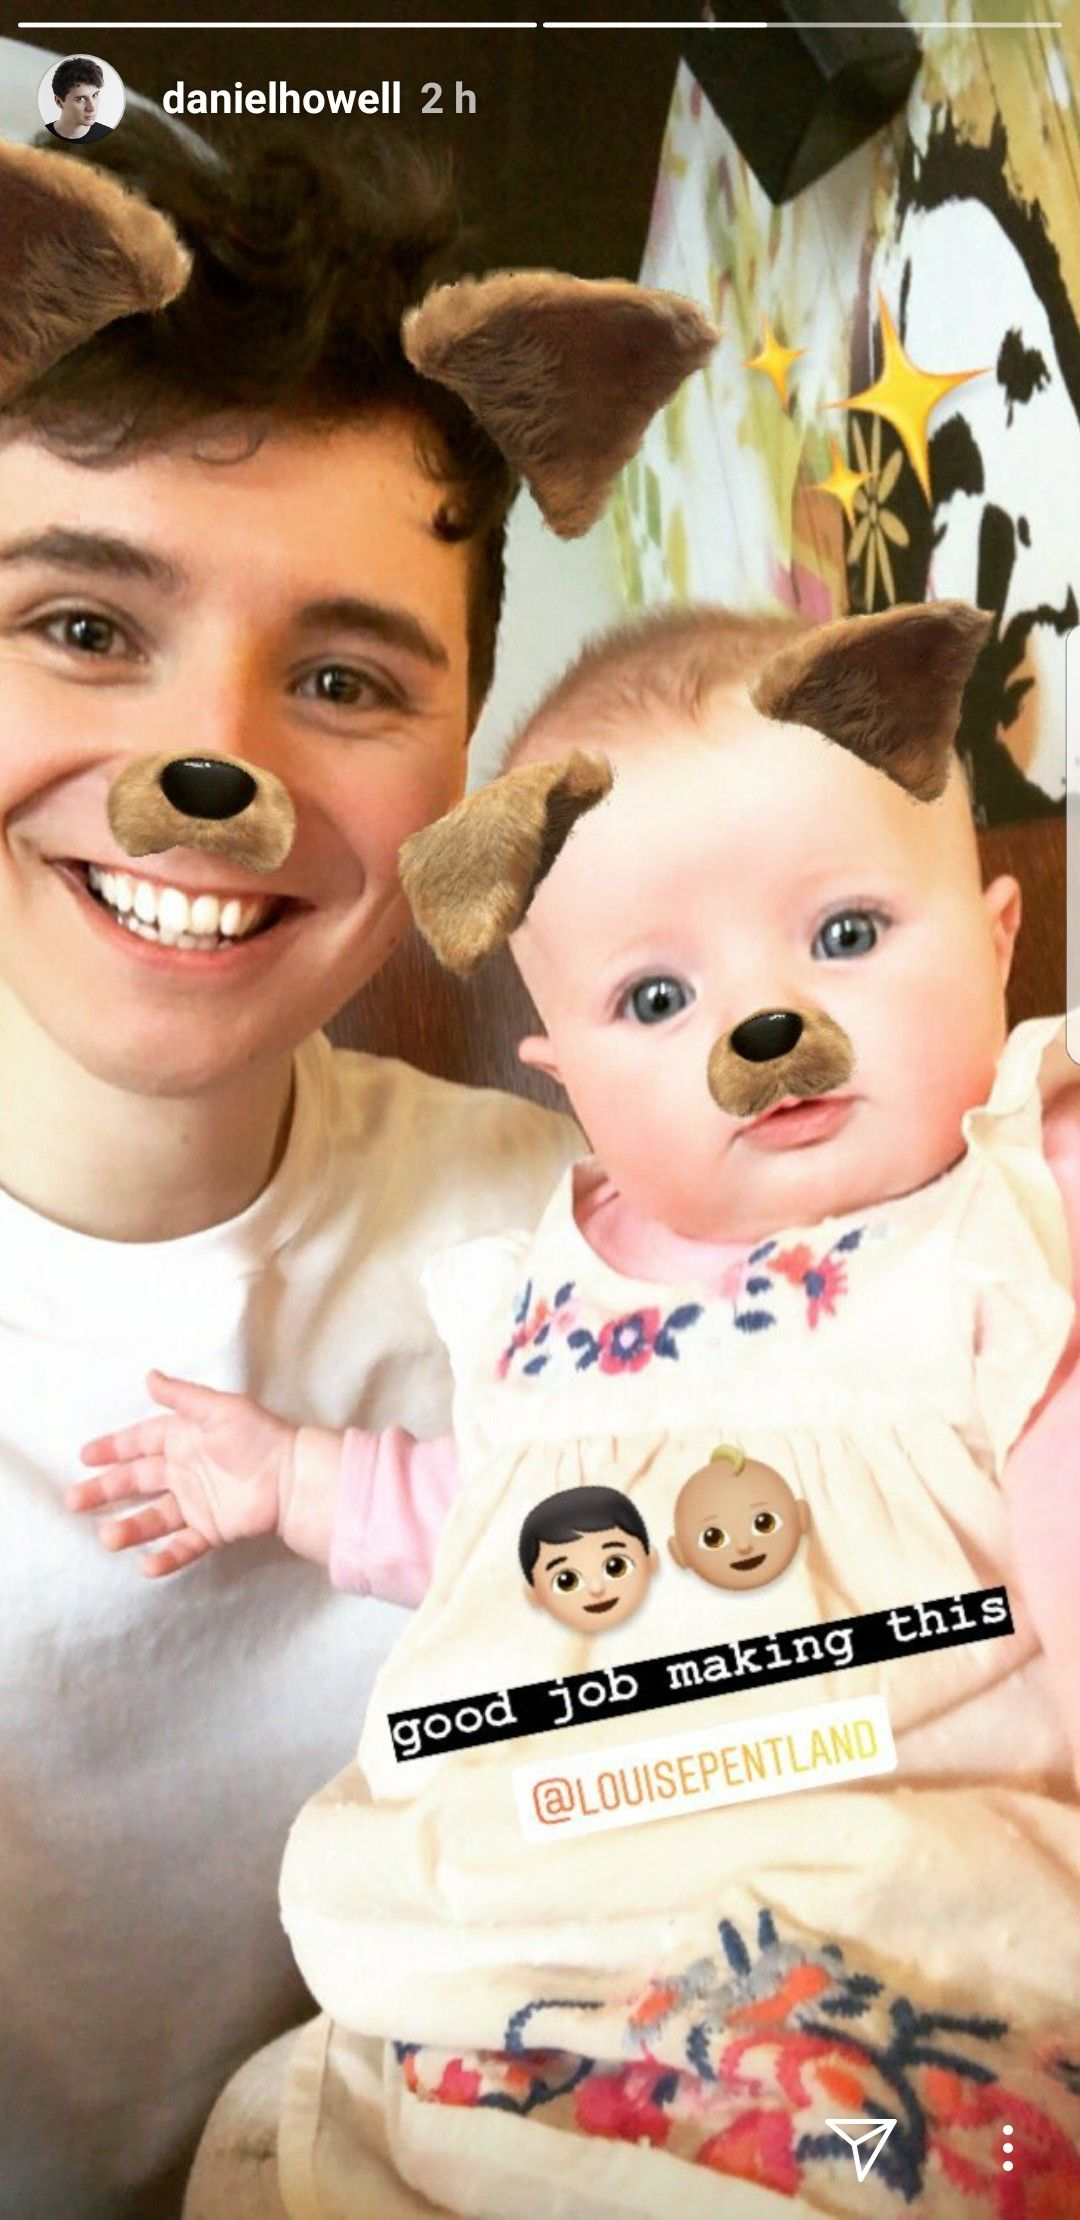 Dan Howell Holding A Baby